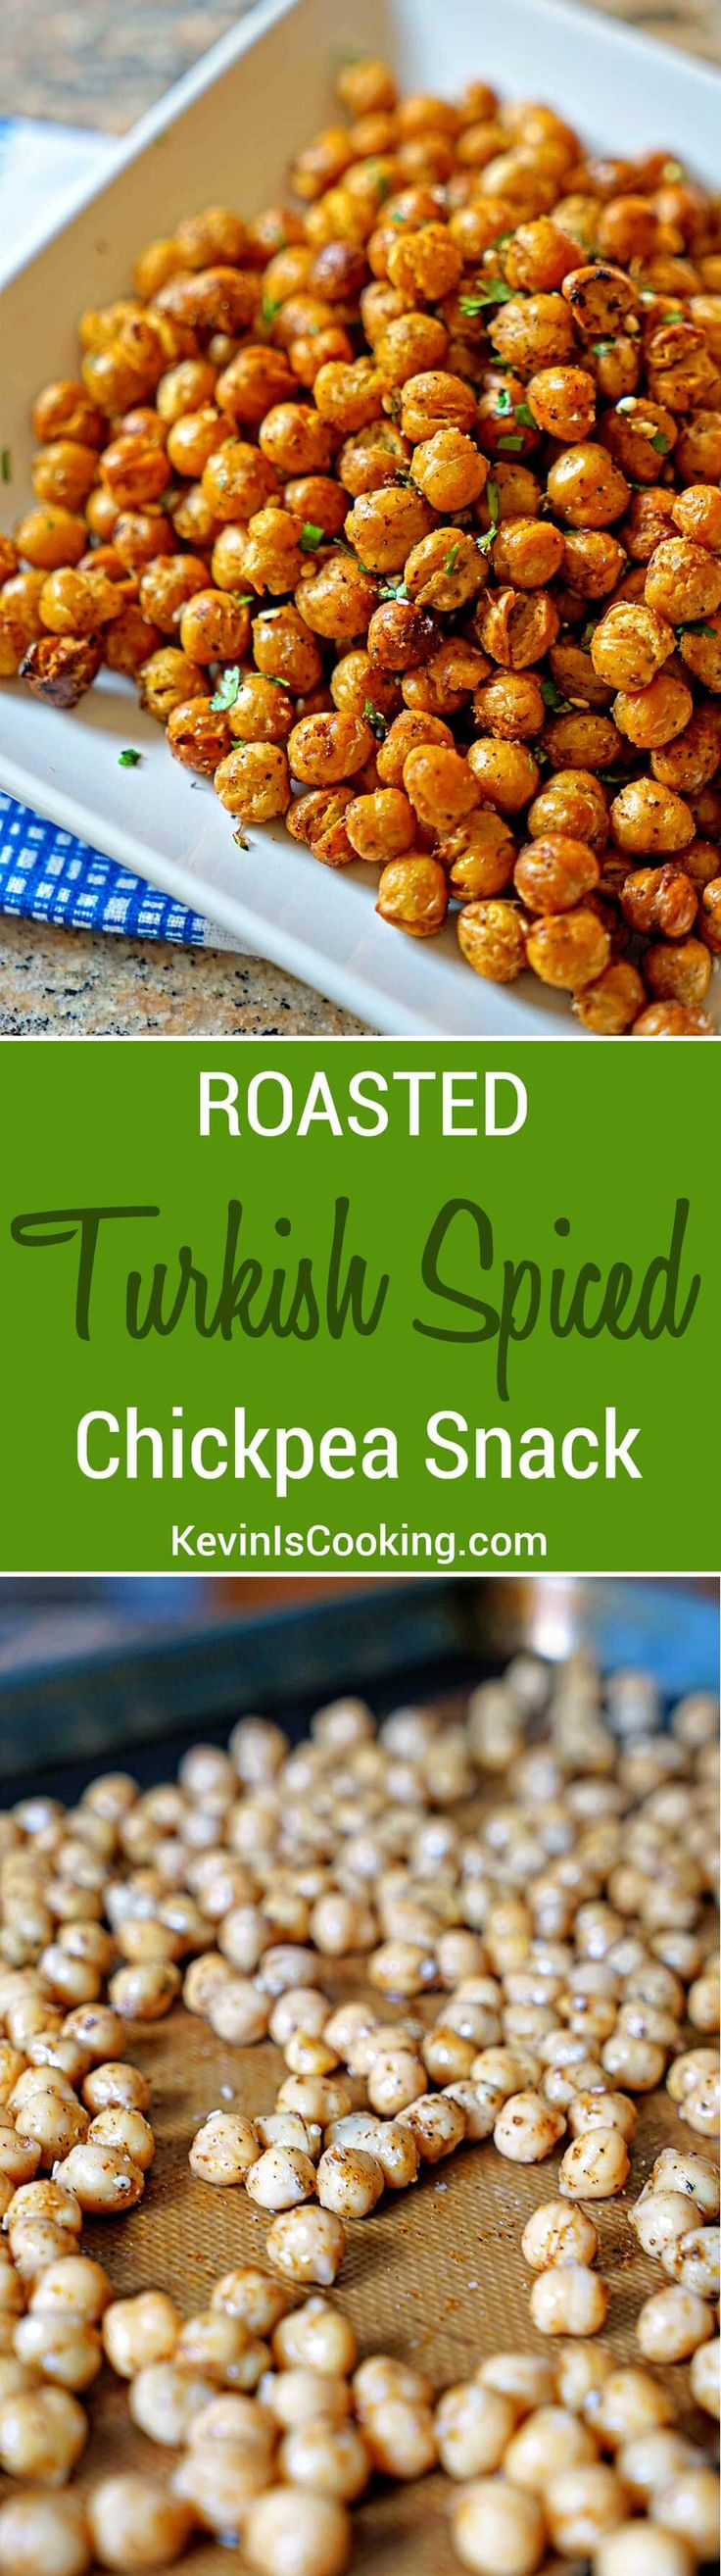 These are a wonderfully easy and simple to make healthy snack to have on hand. A fantastic spice blend recipe is included, too.